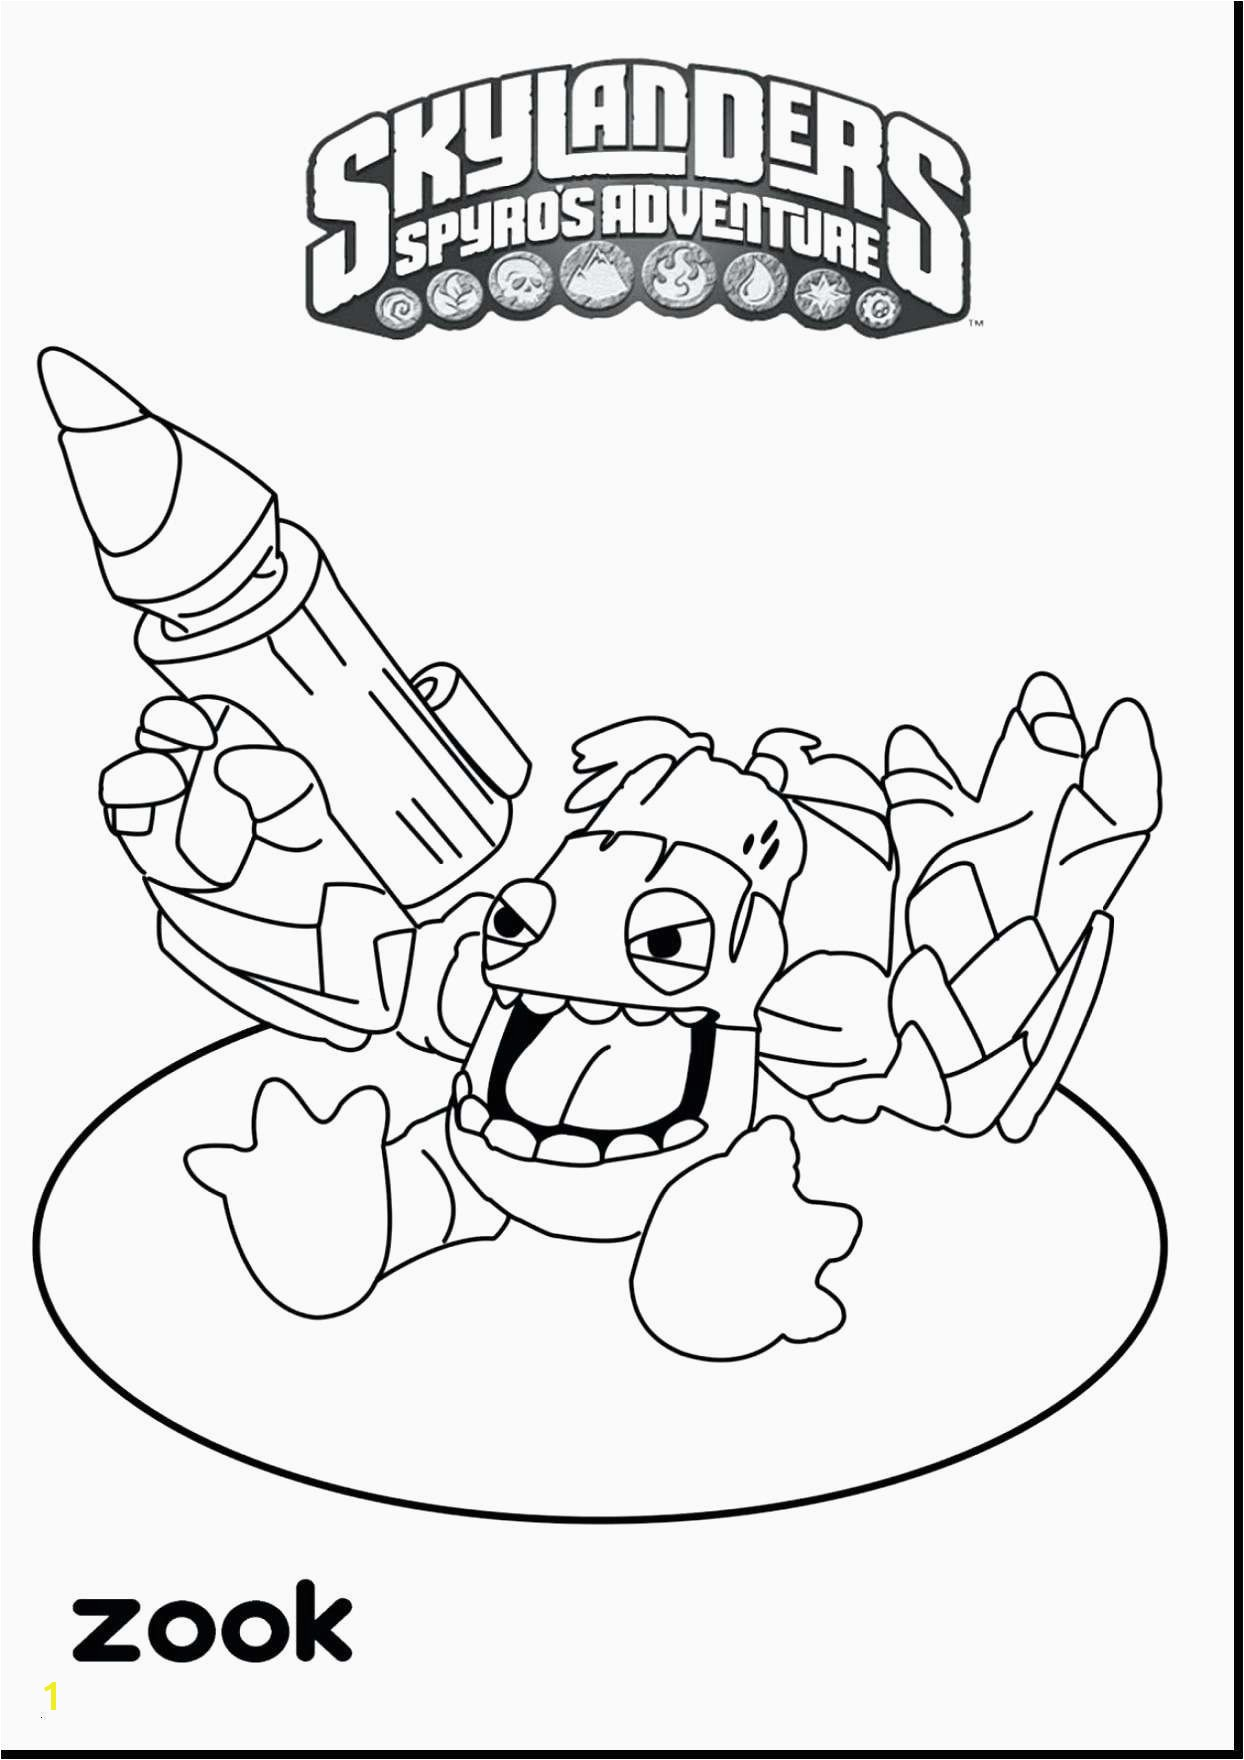 Religious Easter Coloring Pages for toddlers 31 Christian Coloring Pages for Boys Printable